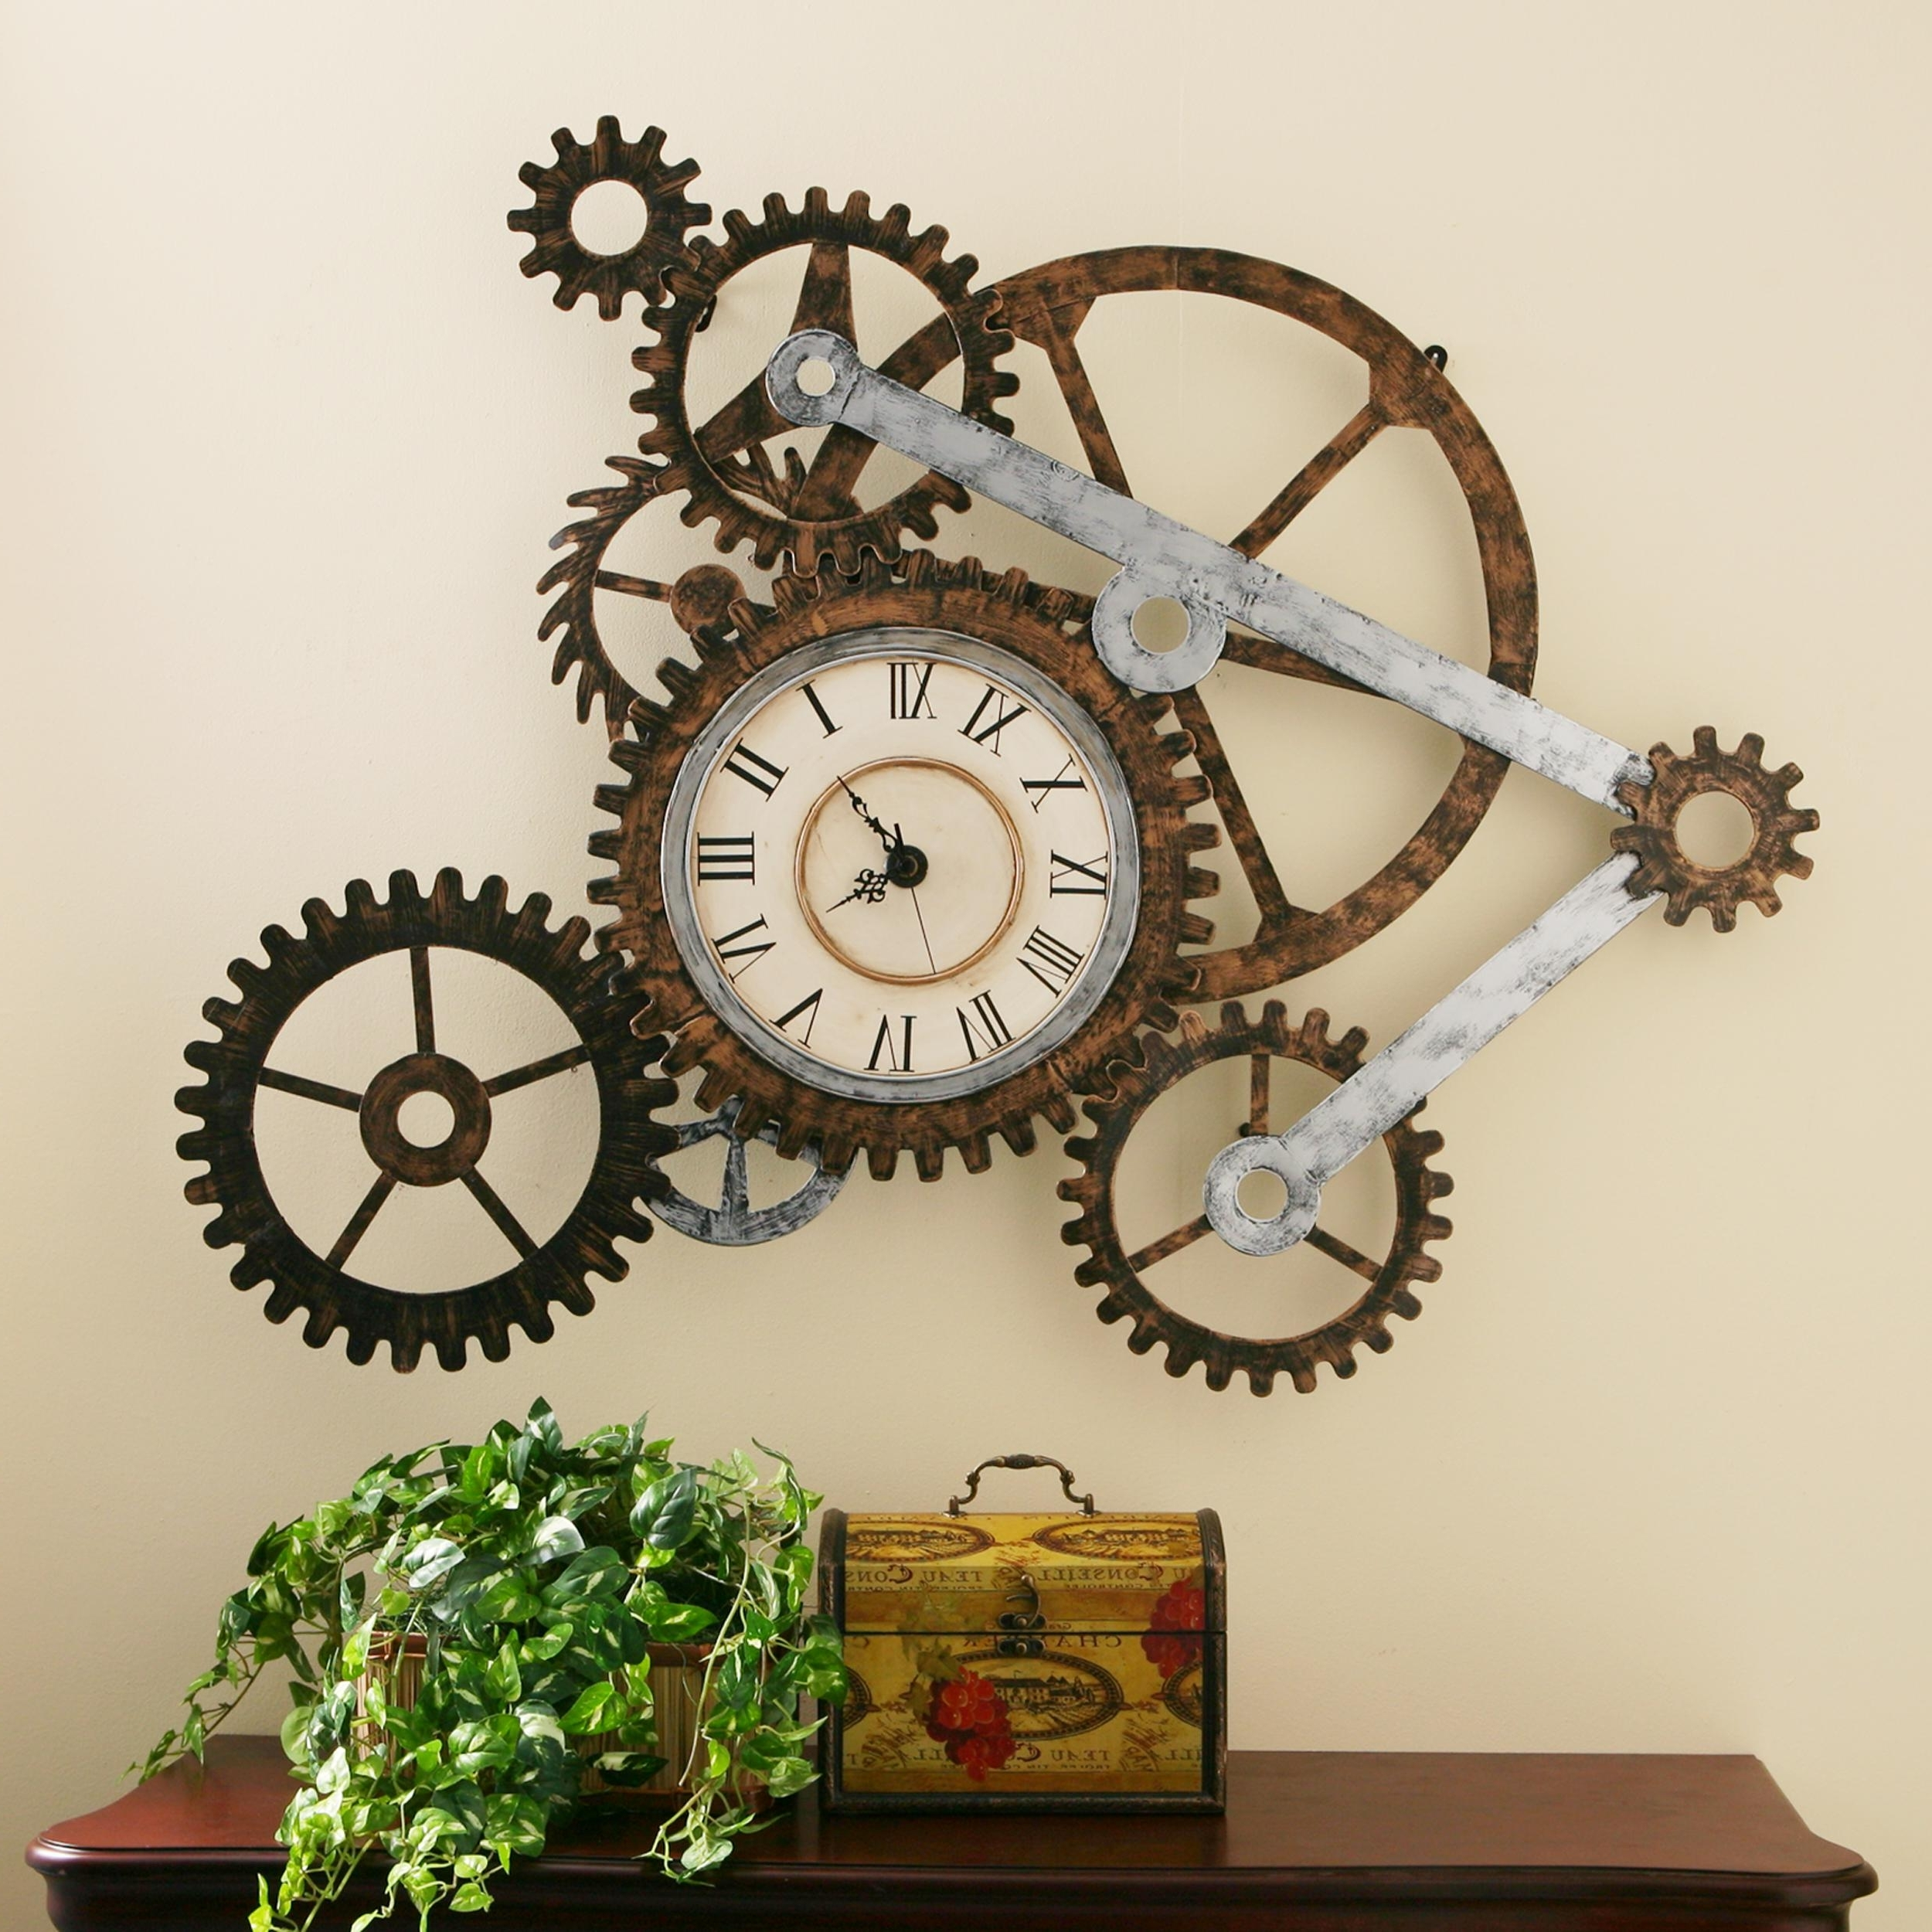 Most Current Amazon Wall Accents Regarding Amazon: Southern Enterprises Metal Gear Wall Art Clock, Hand (View 15 of 15)